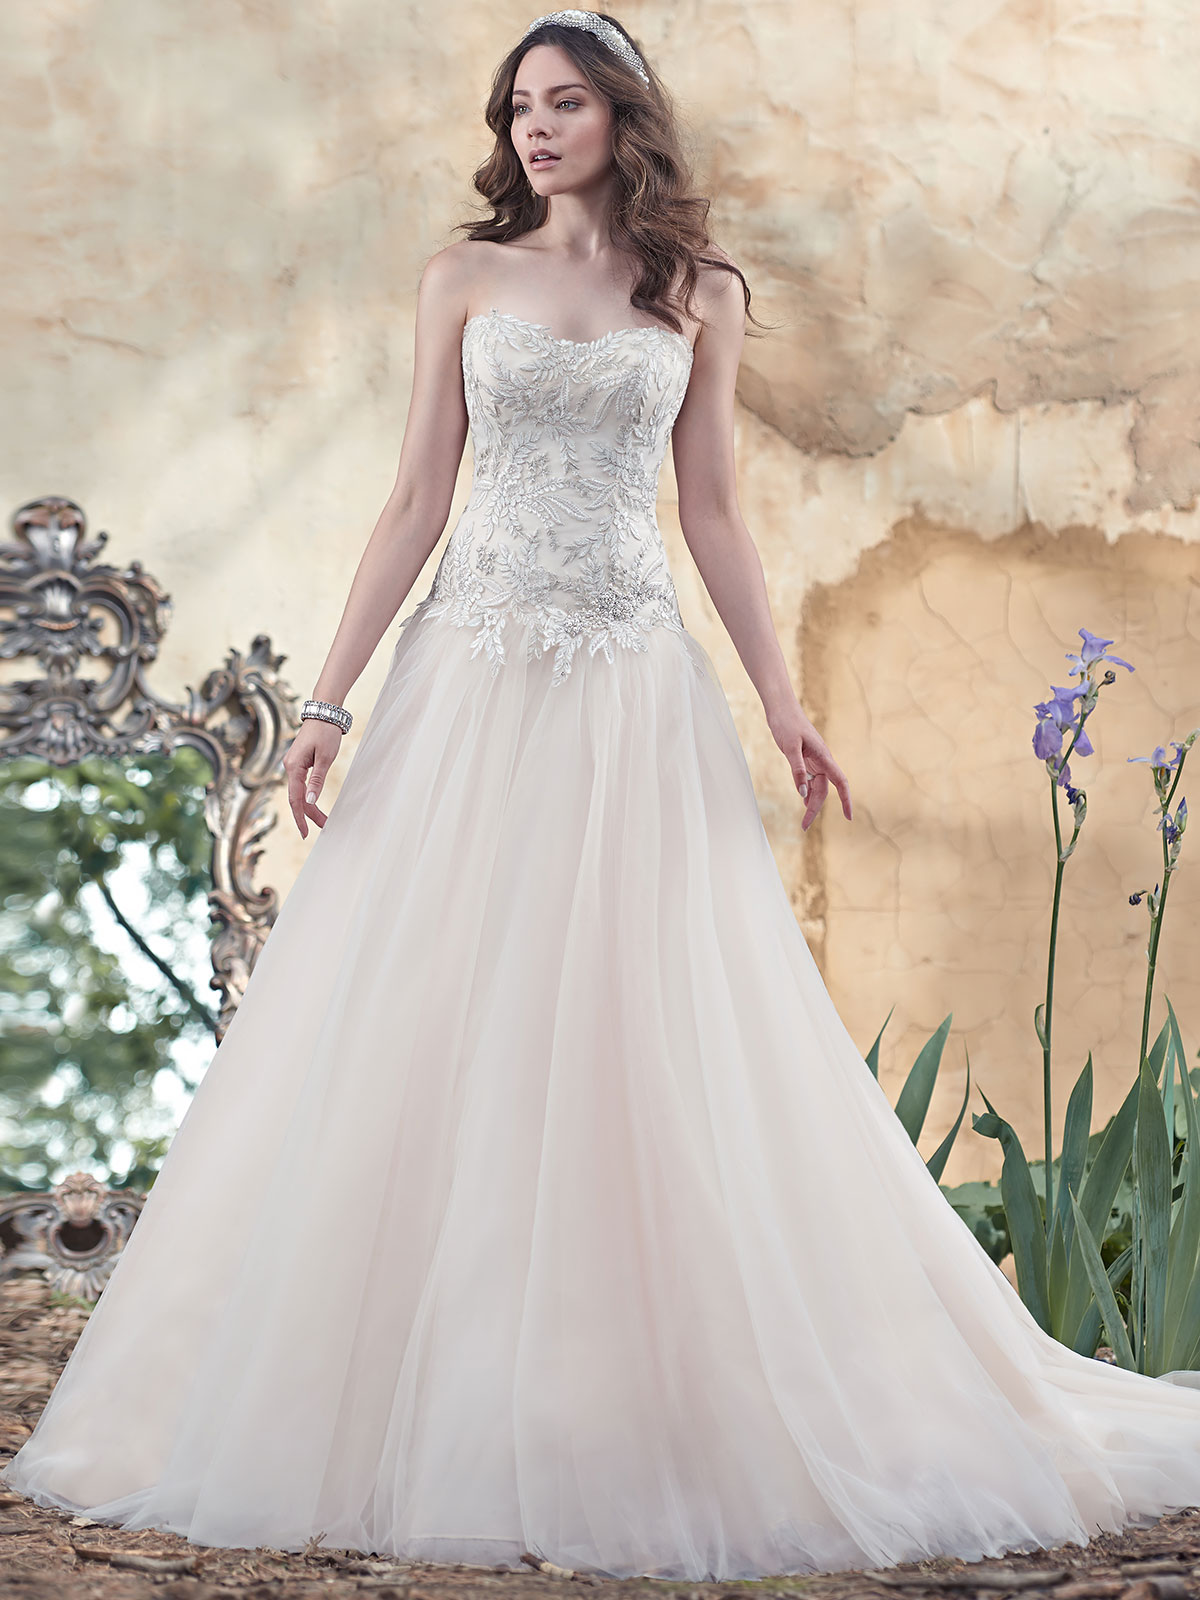 Maggie Sottero Cleo Tulle Ball Gown Bridal Dress DimitraDesigns.com